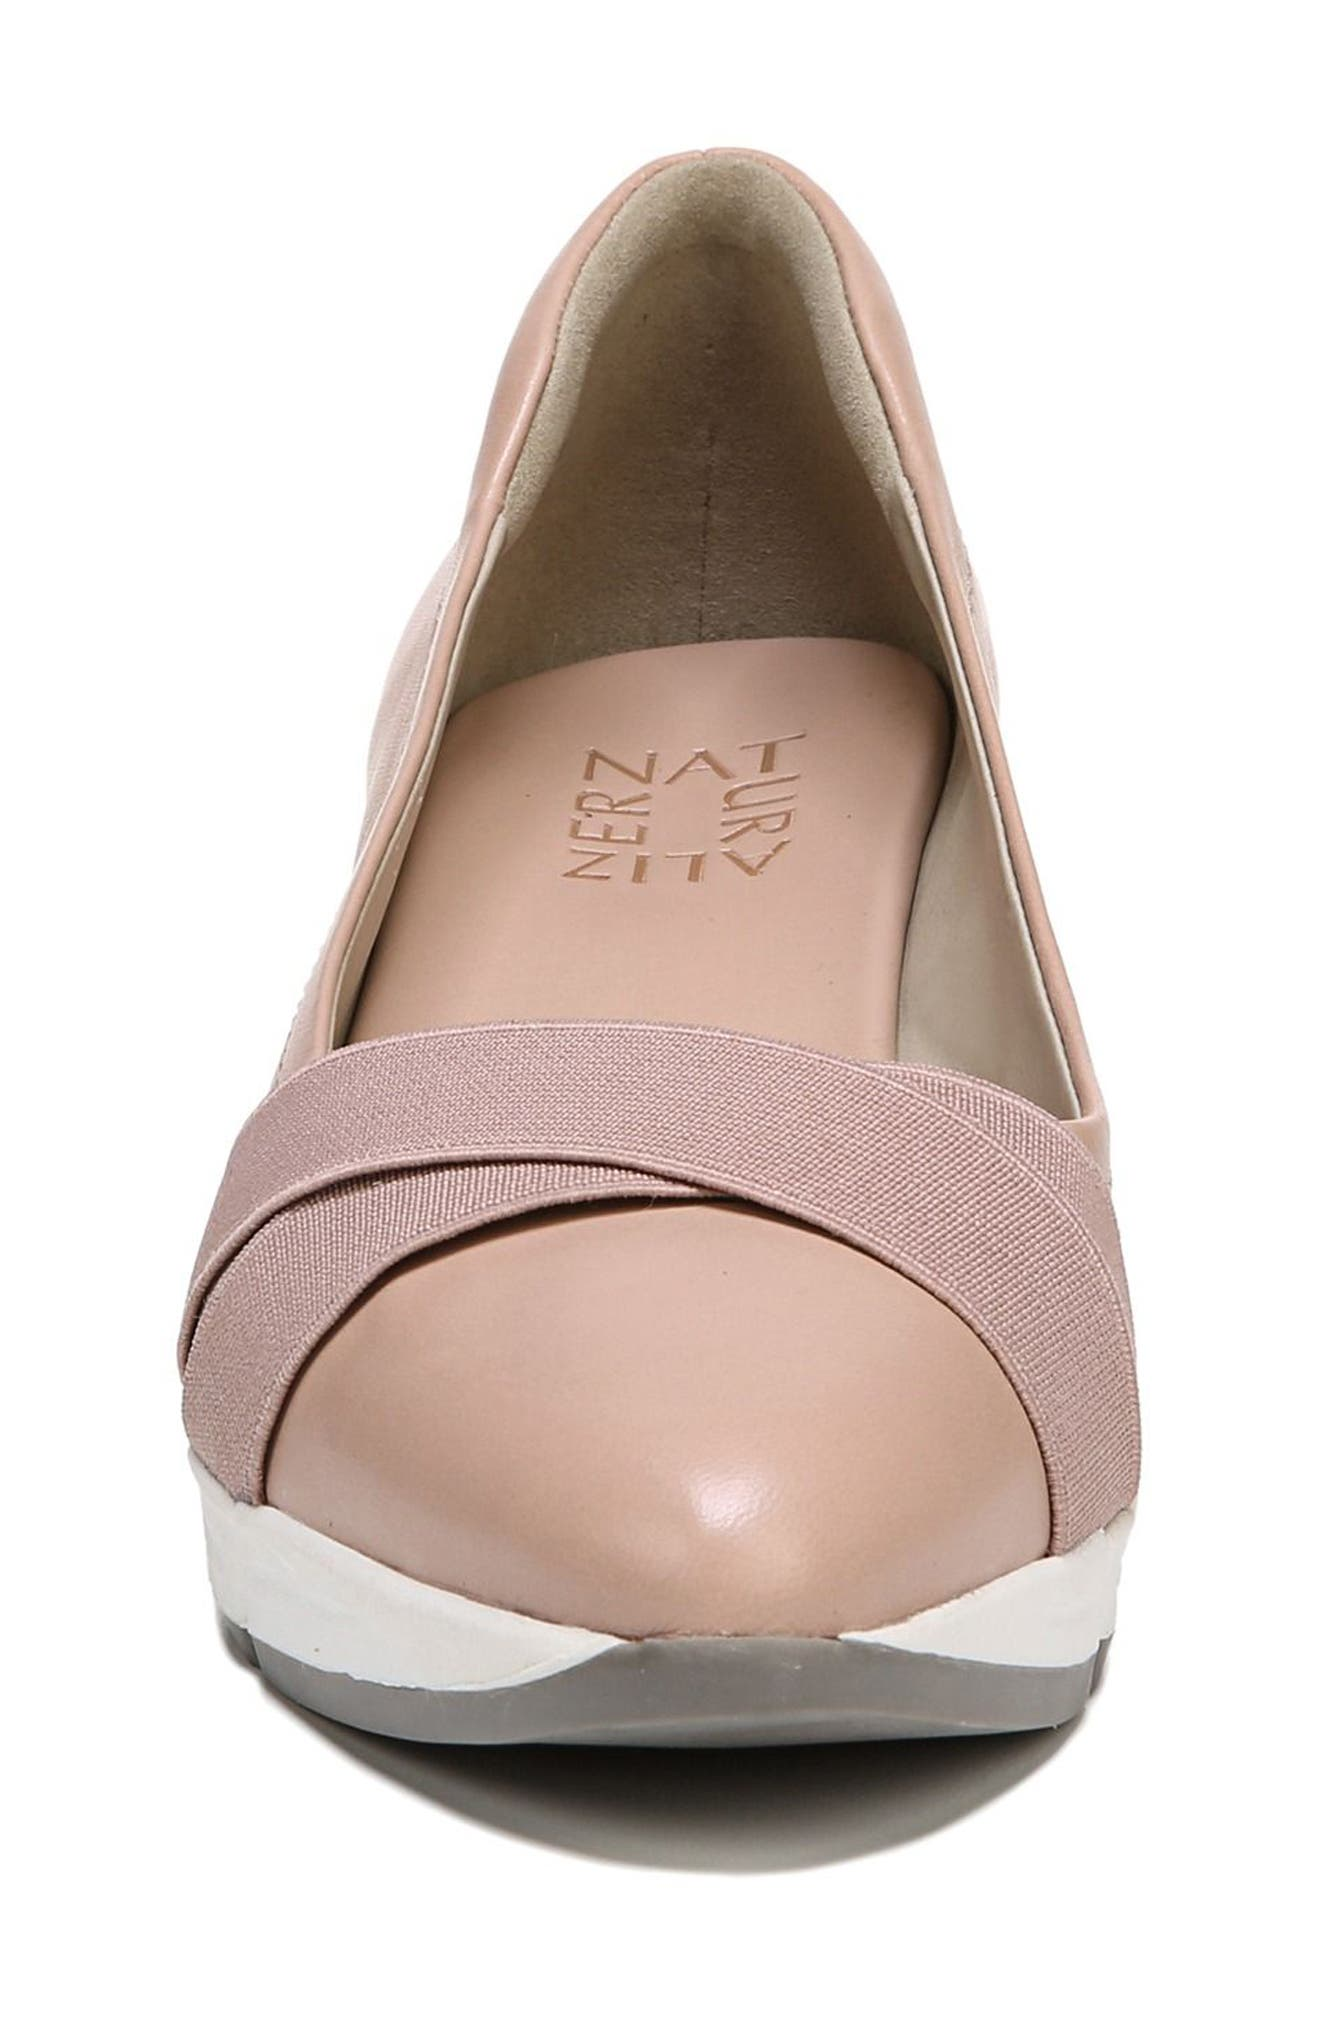 Harlyn Wedge Pump,                             Alternate thumbnail 5, color,                             Mauve Leather